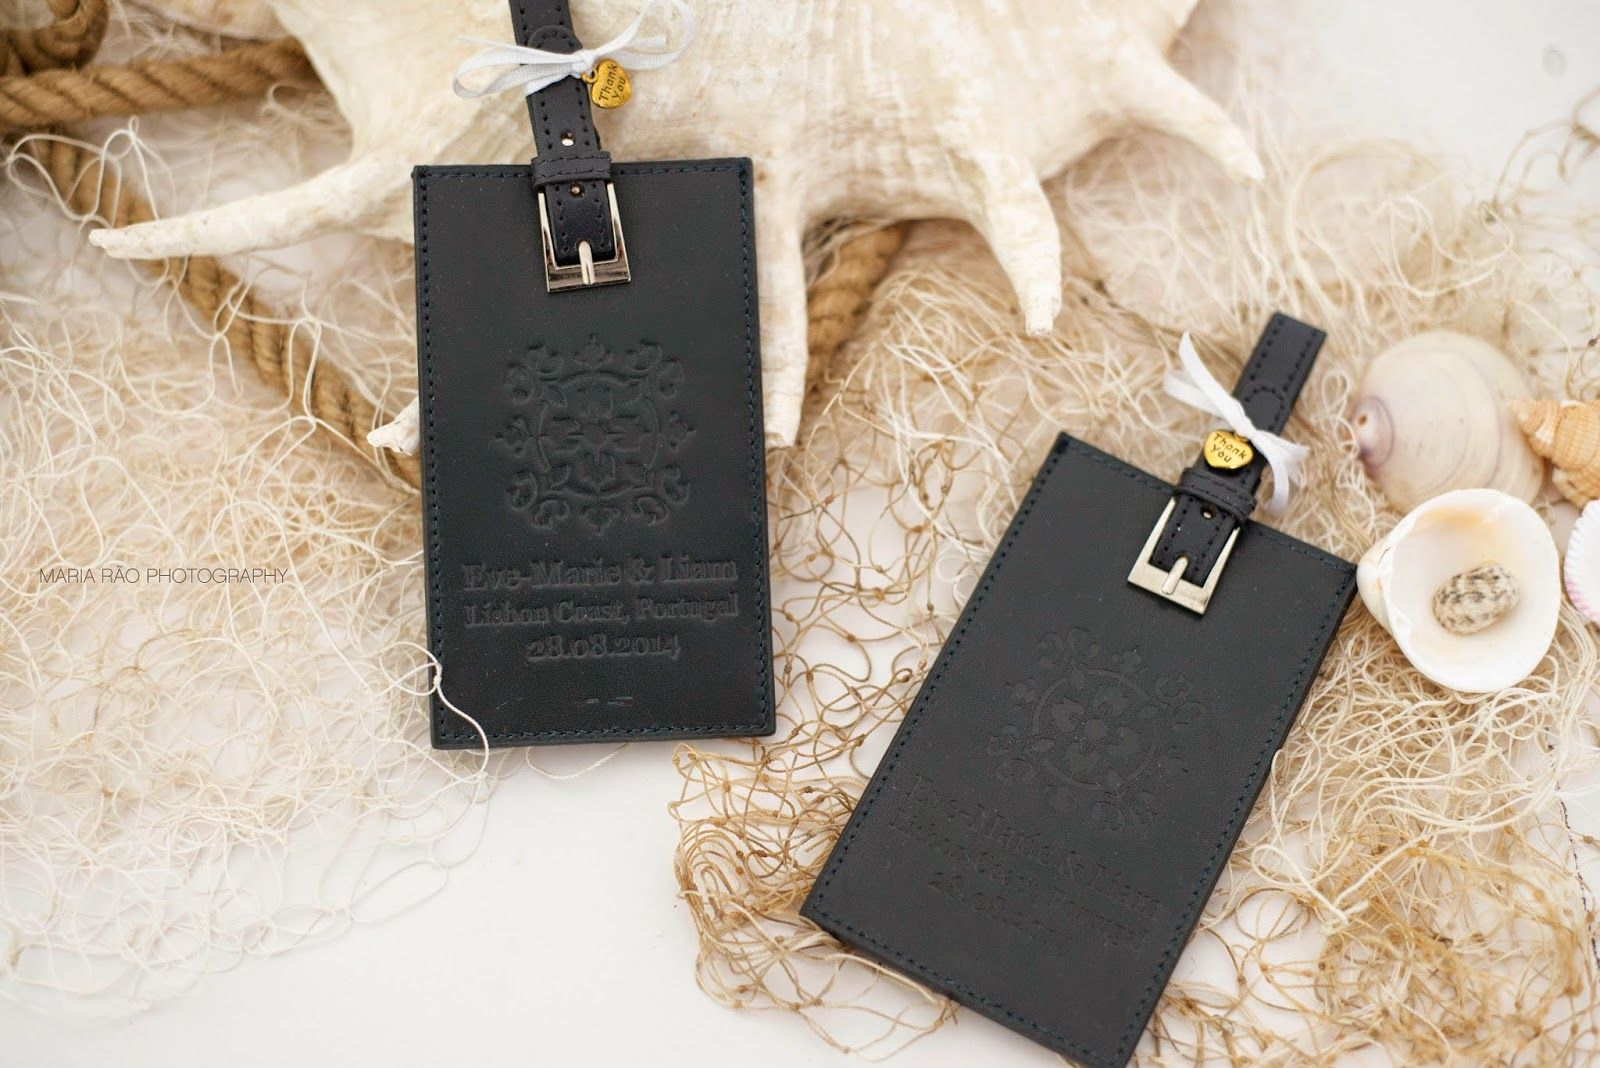 mariaraophotography: Details of Portugal luggage tag favors